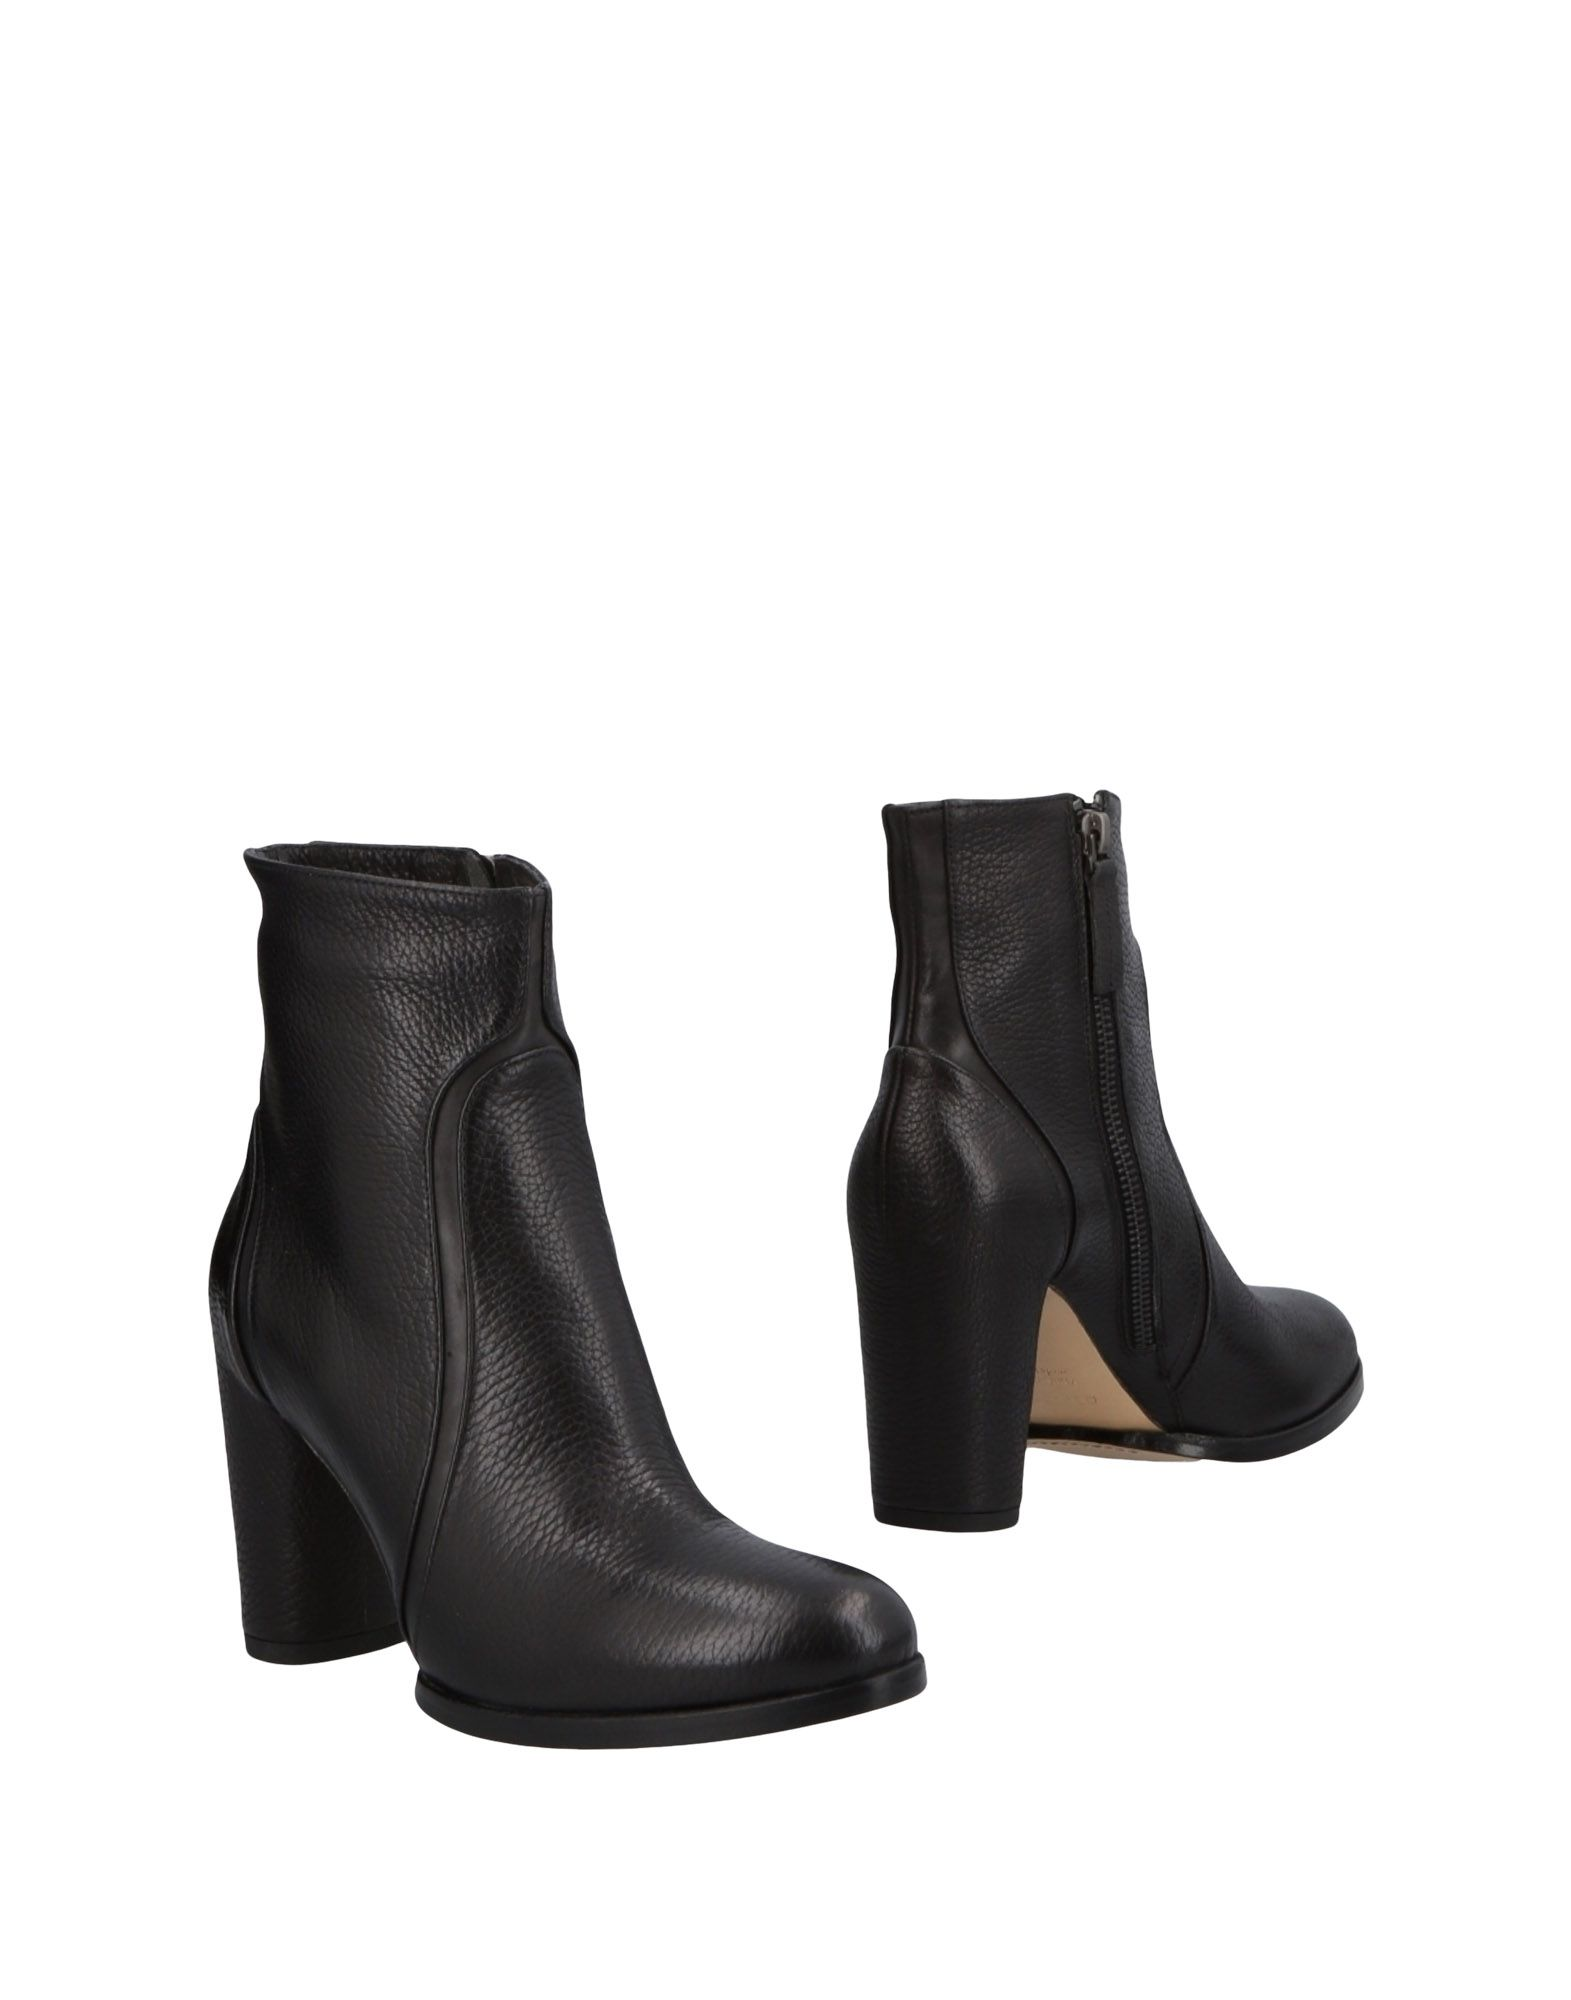 Pomme D'or Pomme Ankle Boot - Women Pomme D'or D'or Ankle Boots online on  United Kingdom - 11482657KM e78b20